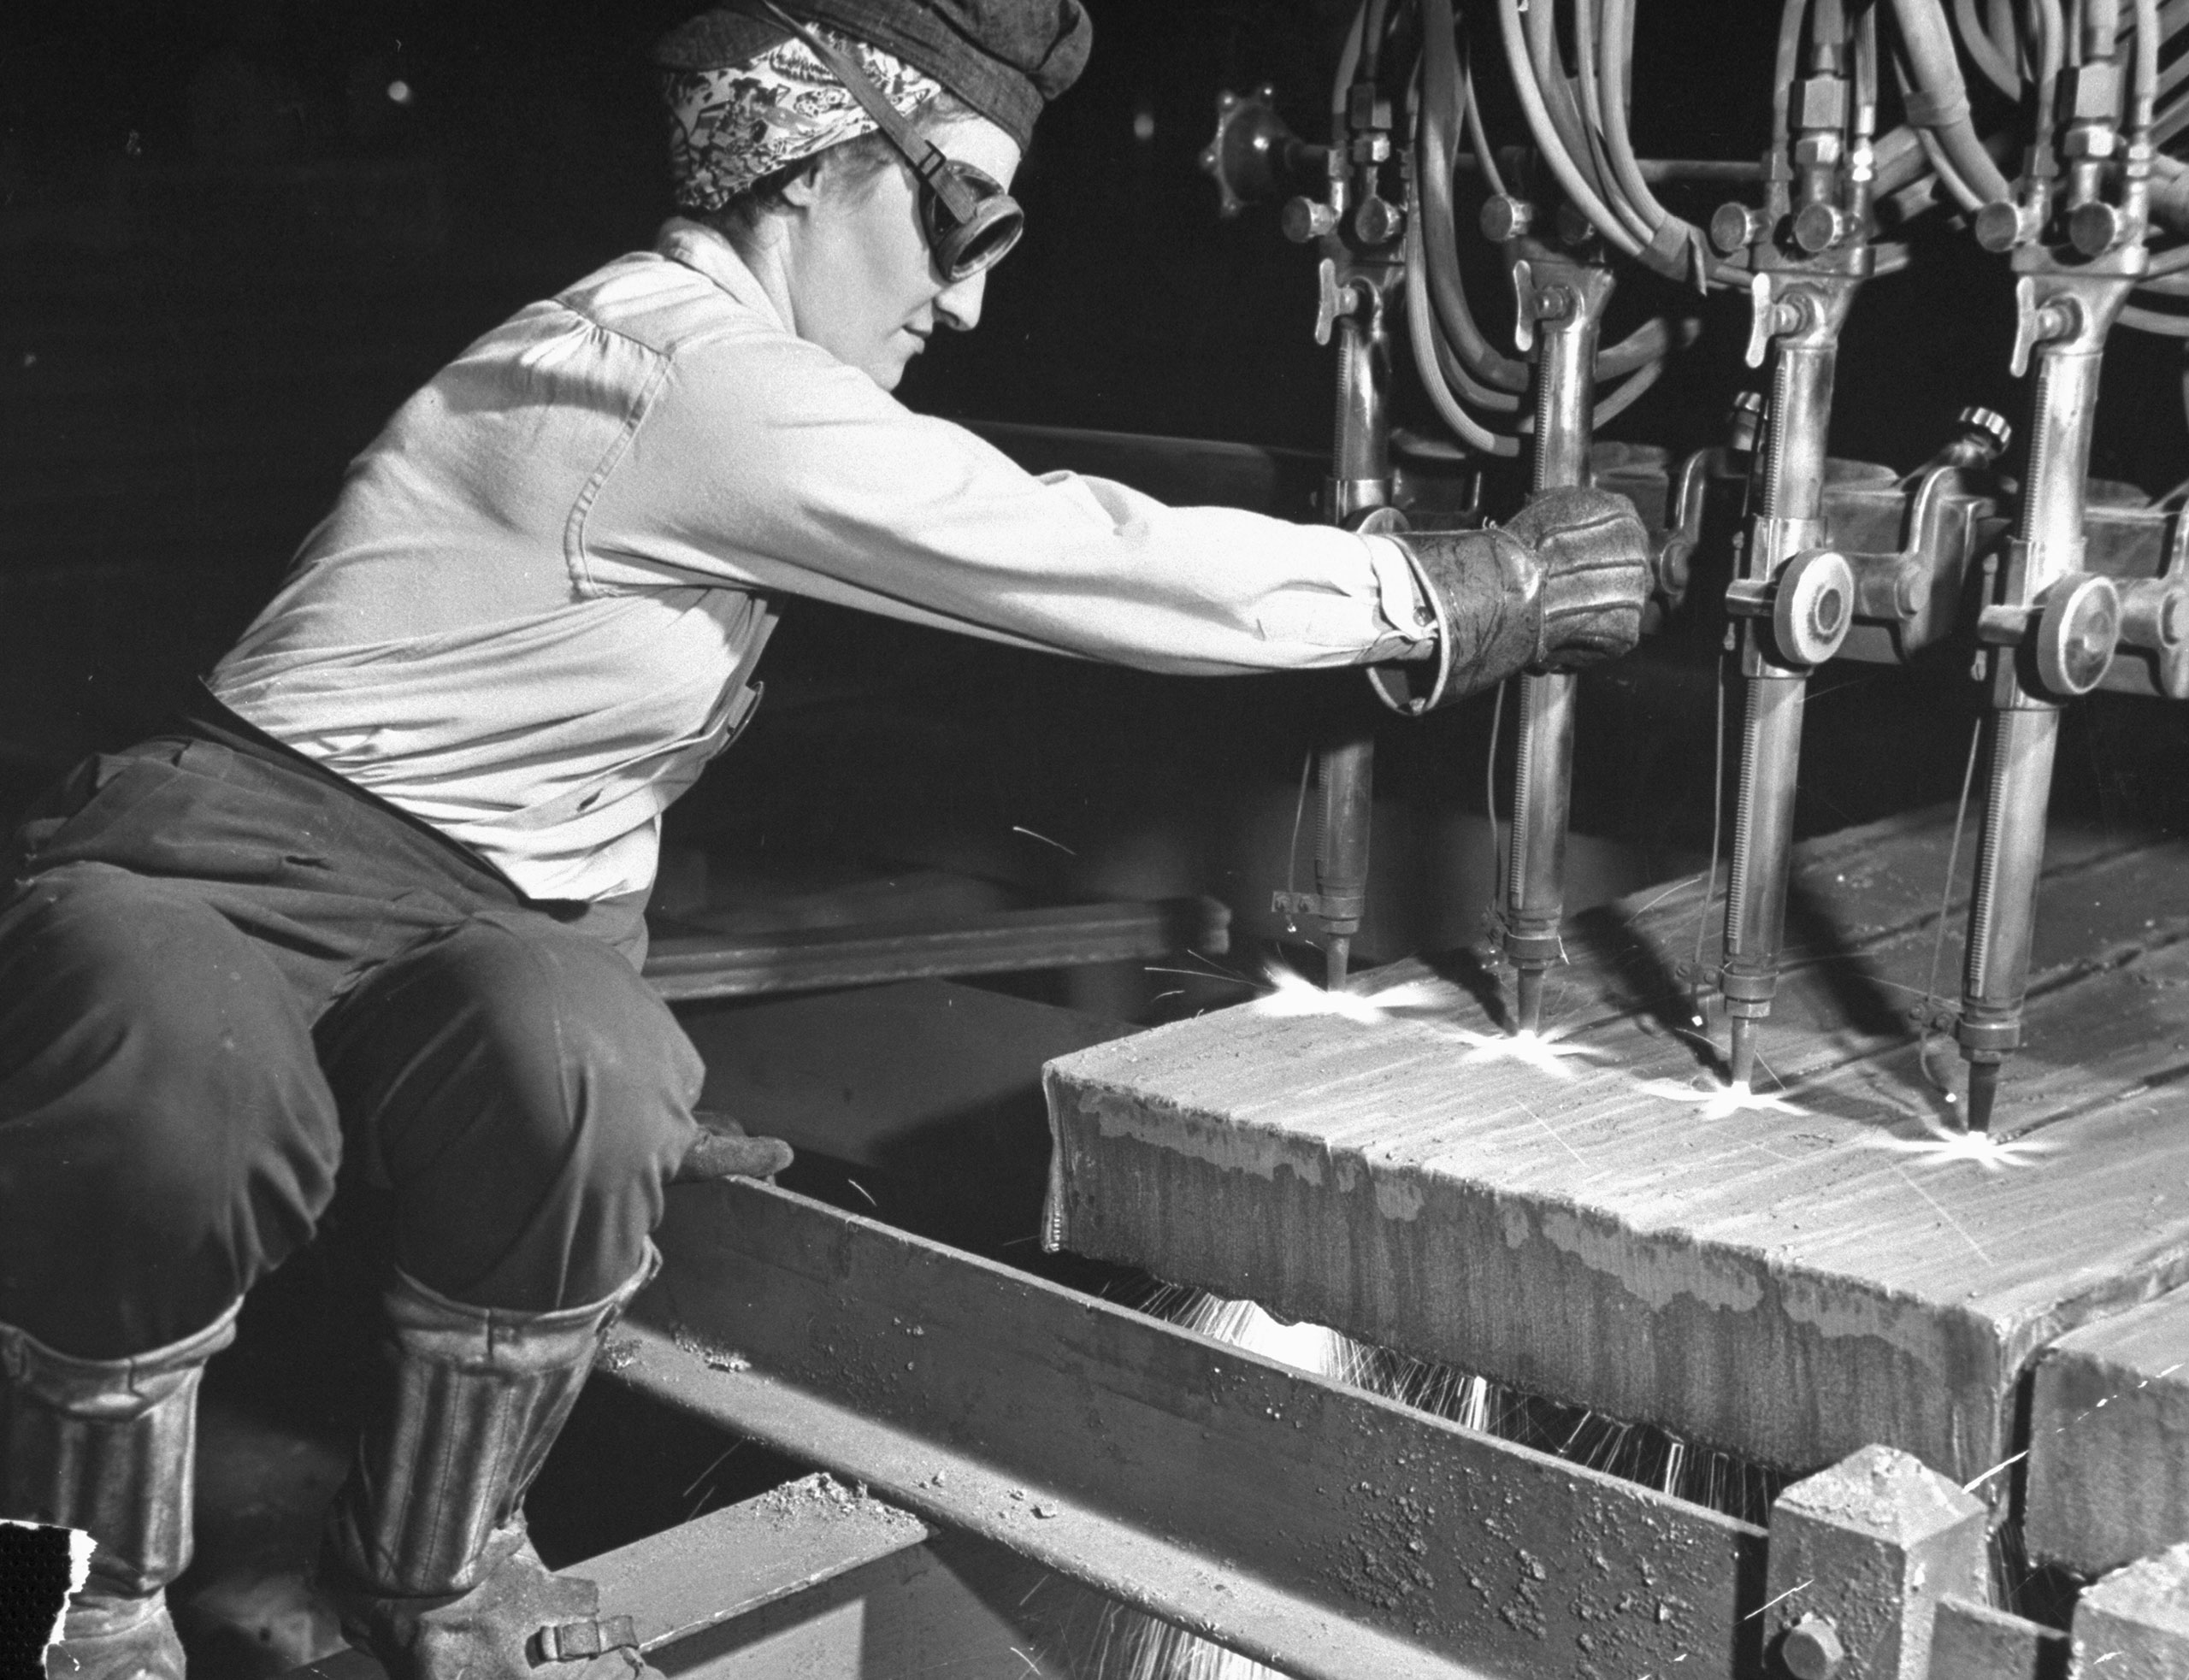 <b>Caption from LIFE.</b> Flame cutting of a slab is done by four-torch machine controlled and operated by one woman. Alice Jo Barker (above) has a husband and son who also work in war industries.